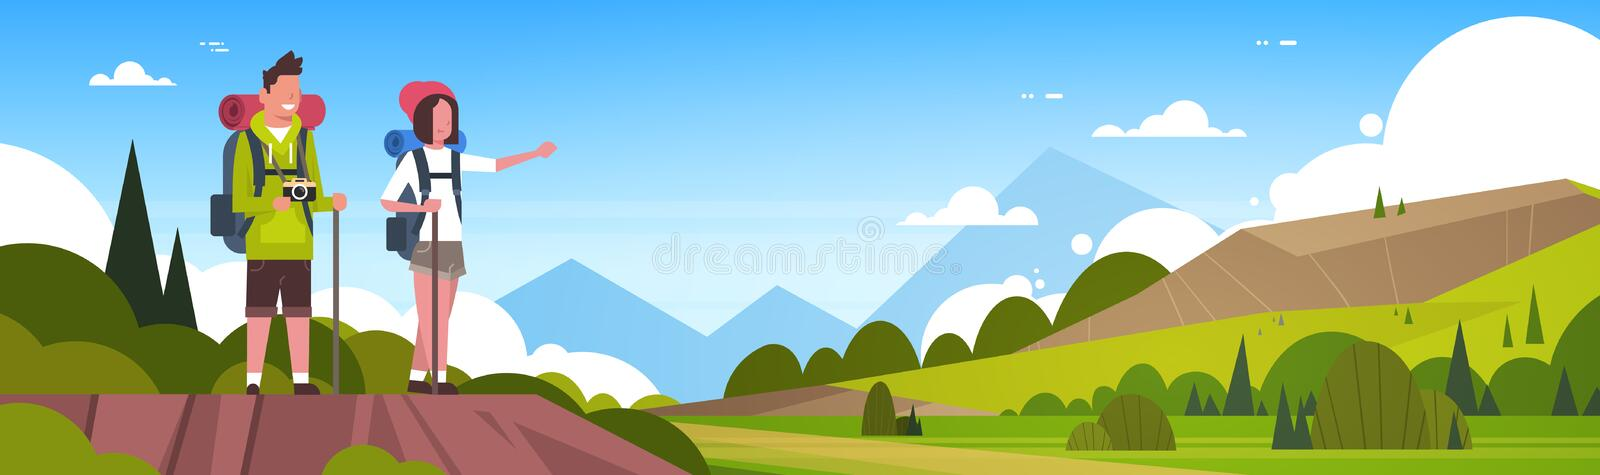 Man And Woman Tourists With Backpacks Over Beautiful Nature Landscape Background Couple Hiking Horizontal Banner. Flat Vector Illustration royalty free illustration